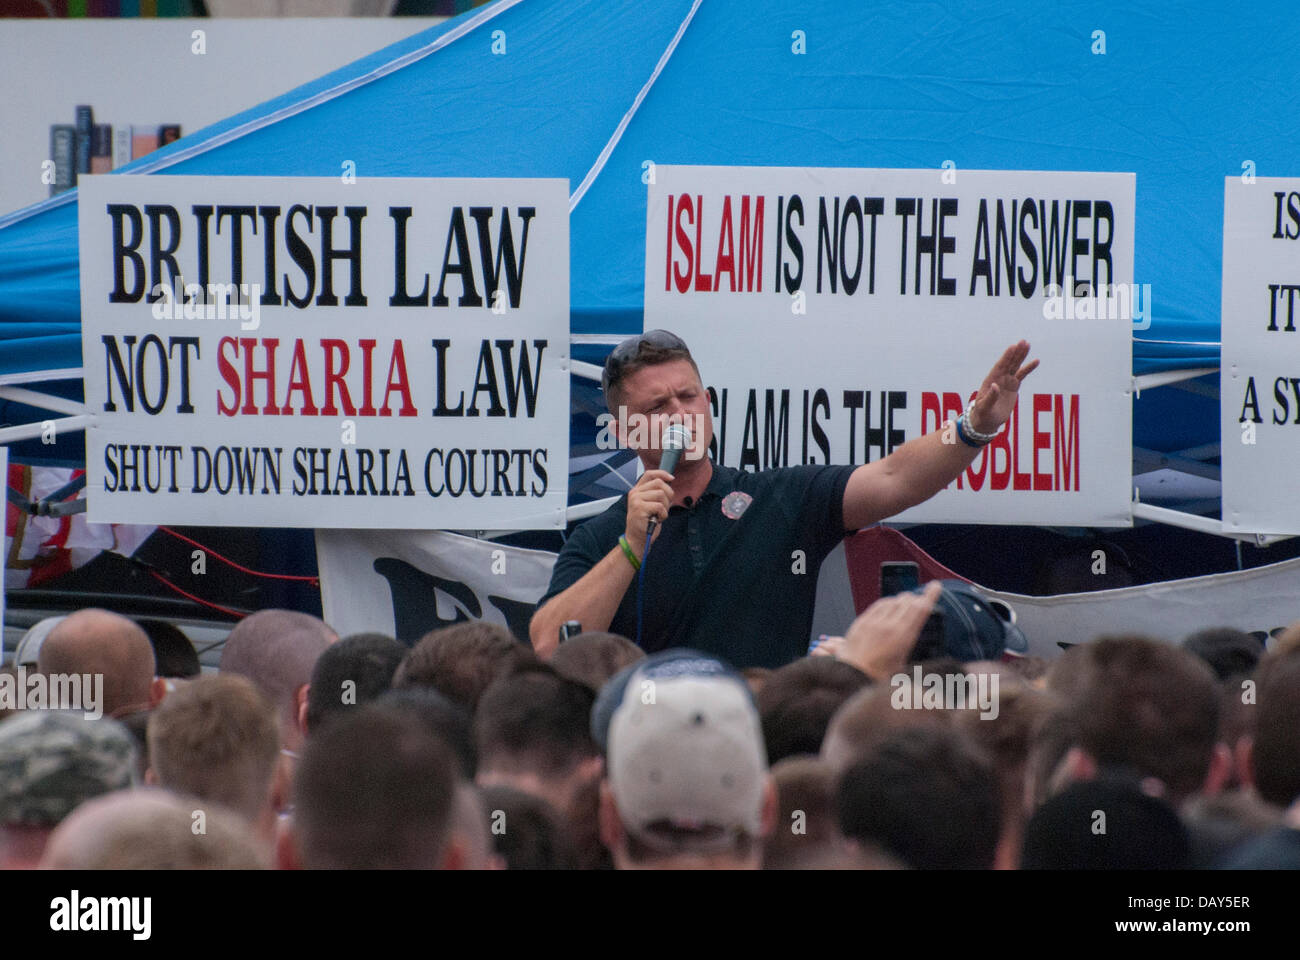 Birmingham, UK. 20th July, 2013. As crowds gathered in Centenary Square in central Birmingham, English Defence - Stock Image